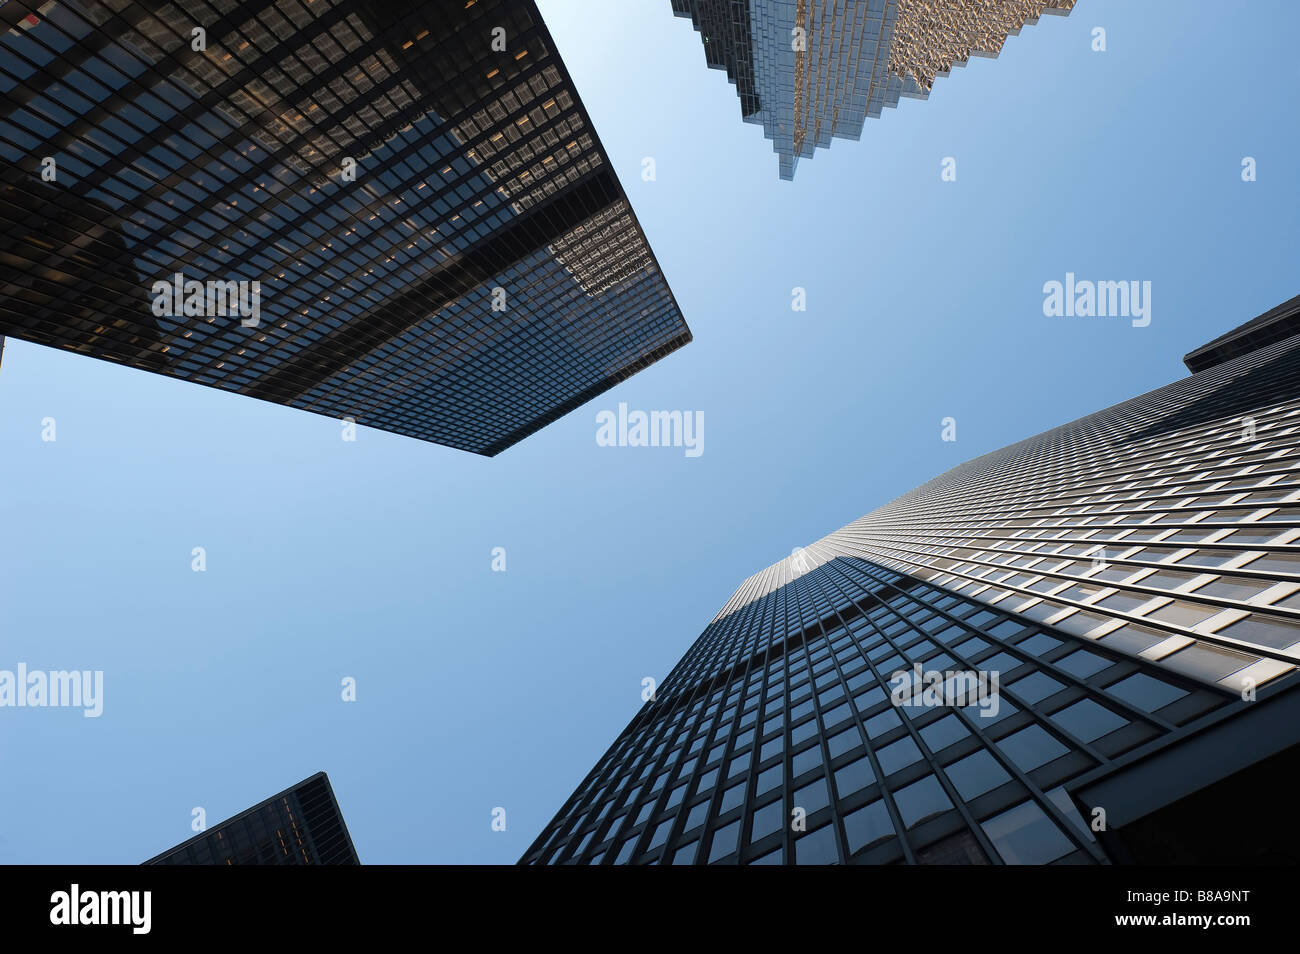 Looking straight up between several highrise buildings in a downtown area - Stock Image